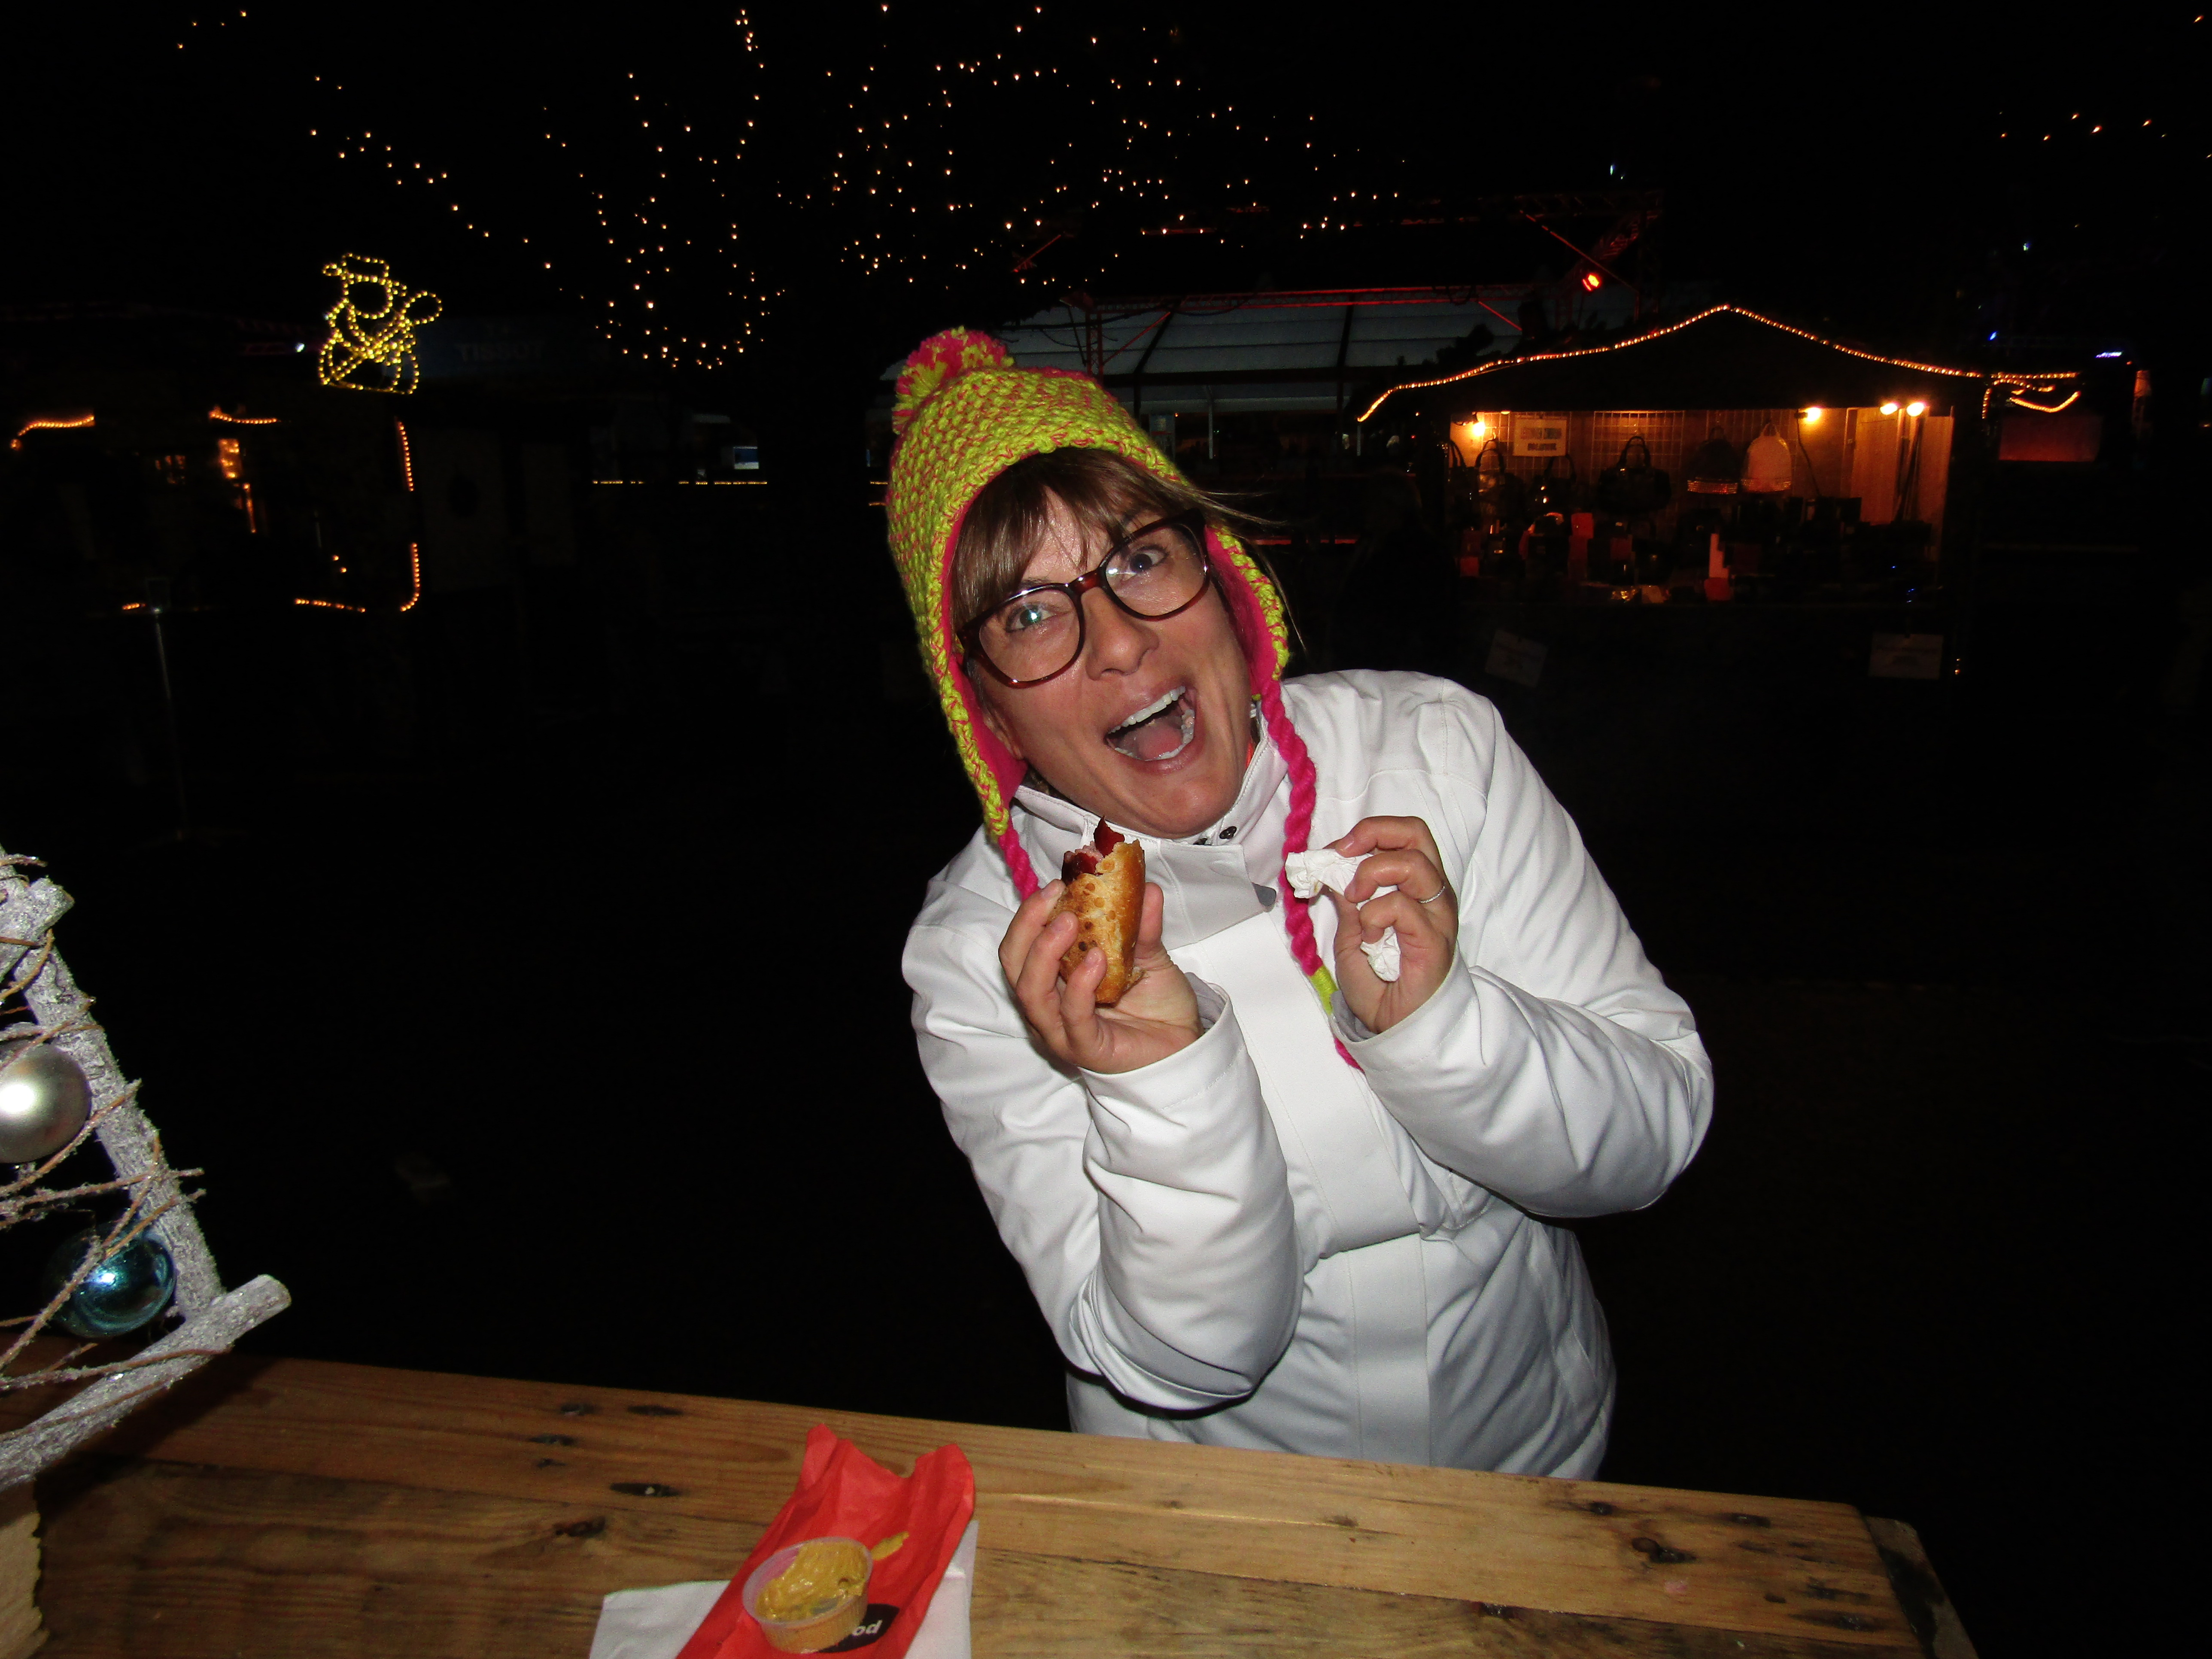 2016 - Switzerland - Interlaken - Christmas Market & Ice Festival - Eating a yummy German sausage!!